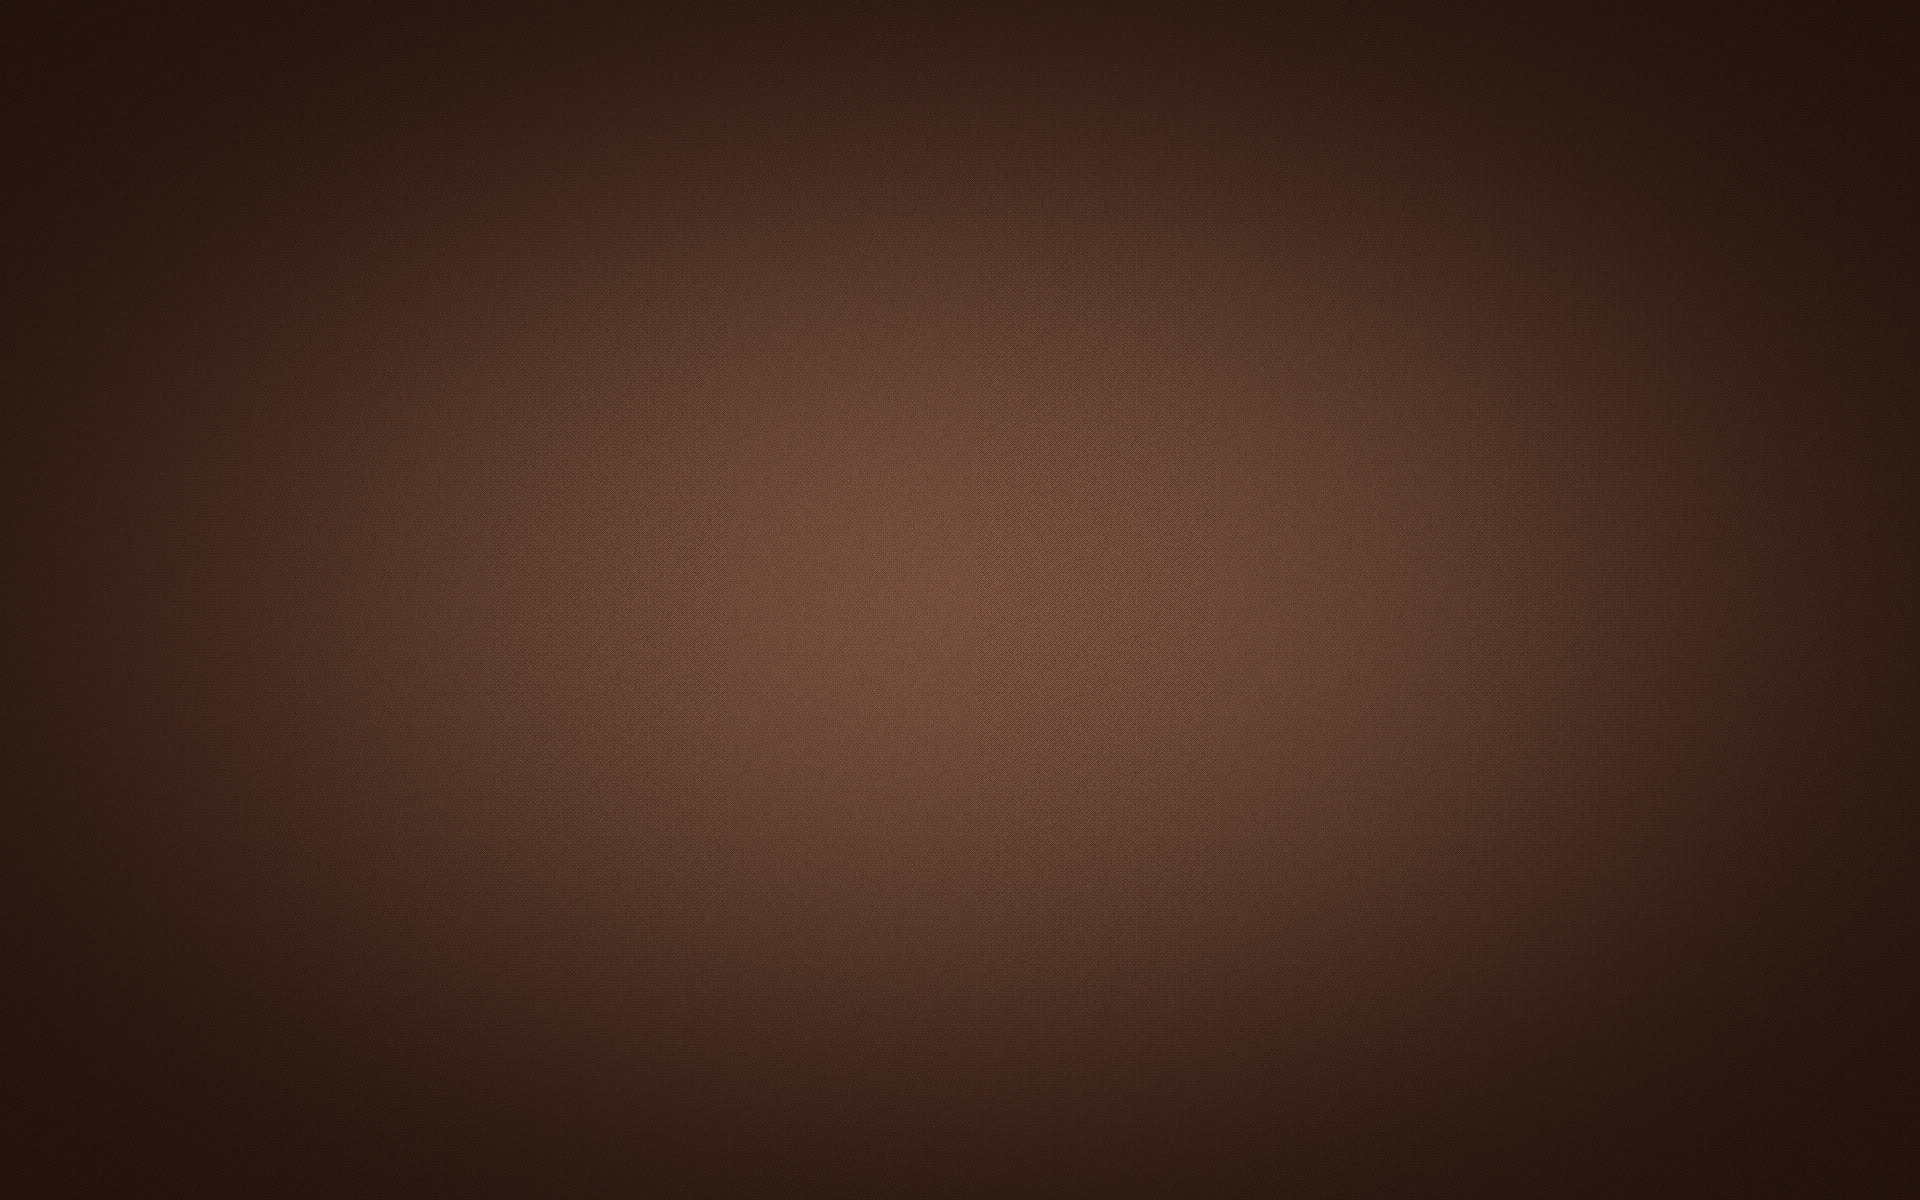 Brown background wallpaper wallpapersafari for Where to get wallpaper